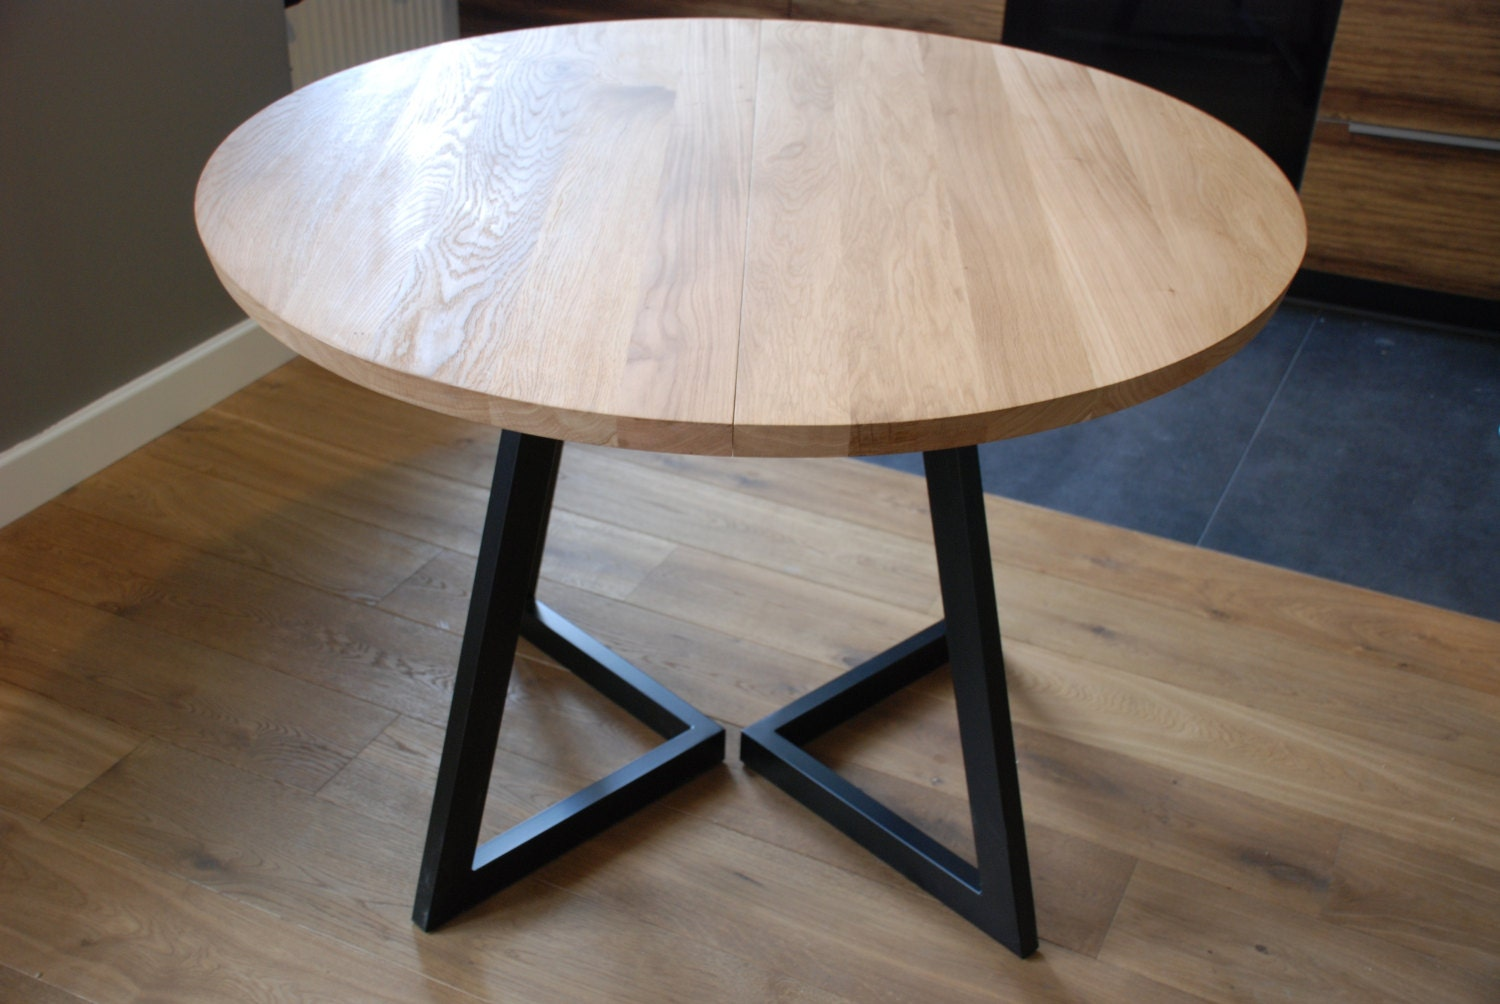 Bois et table ronde rallonges design moderne en acier for Table rallonge ronde